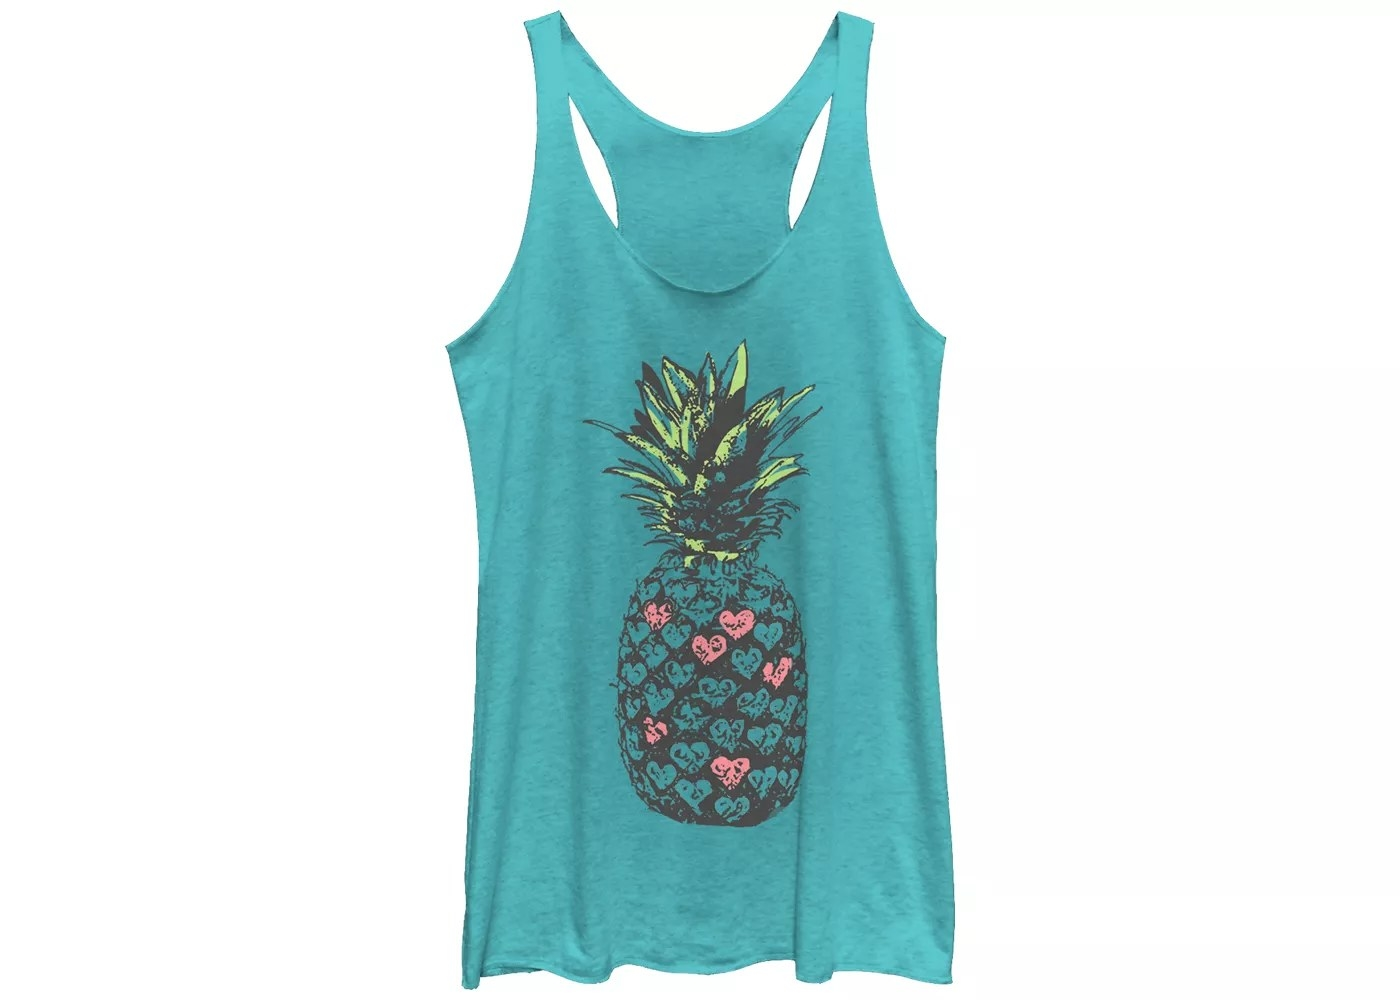 The turquoise racerback with a pineapple graphic